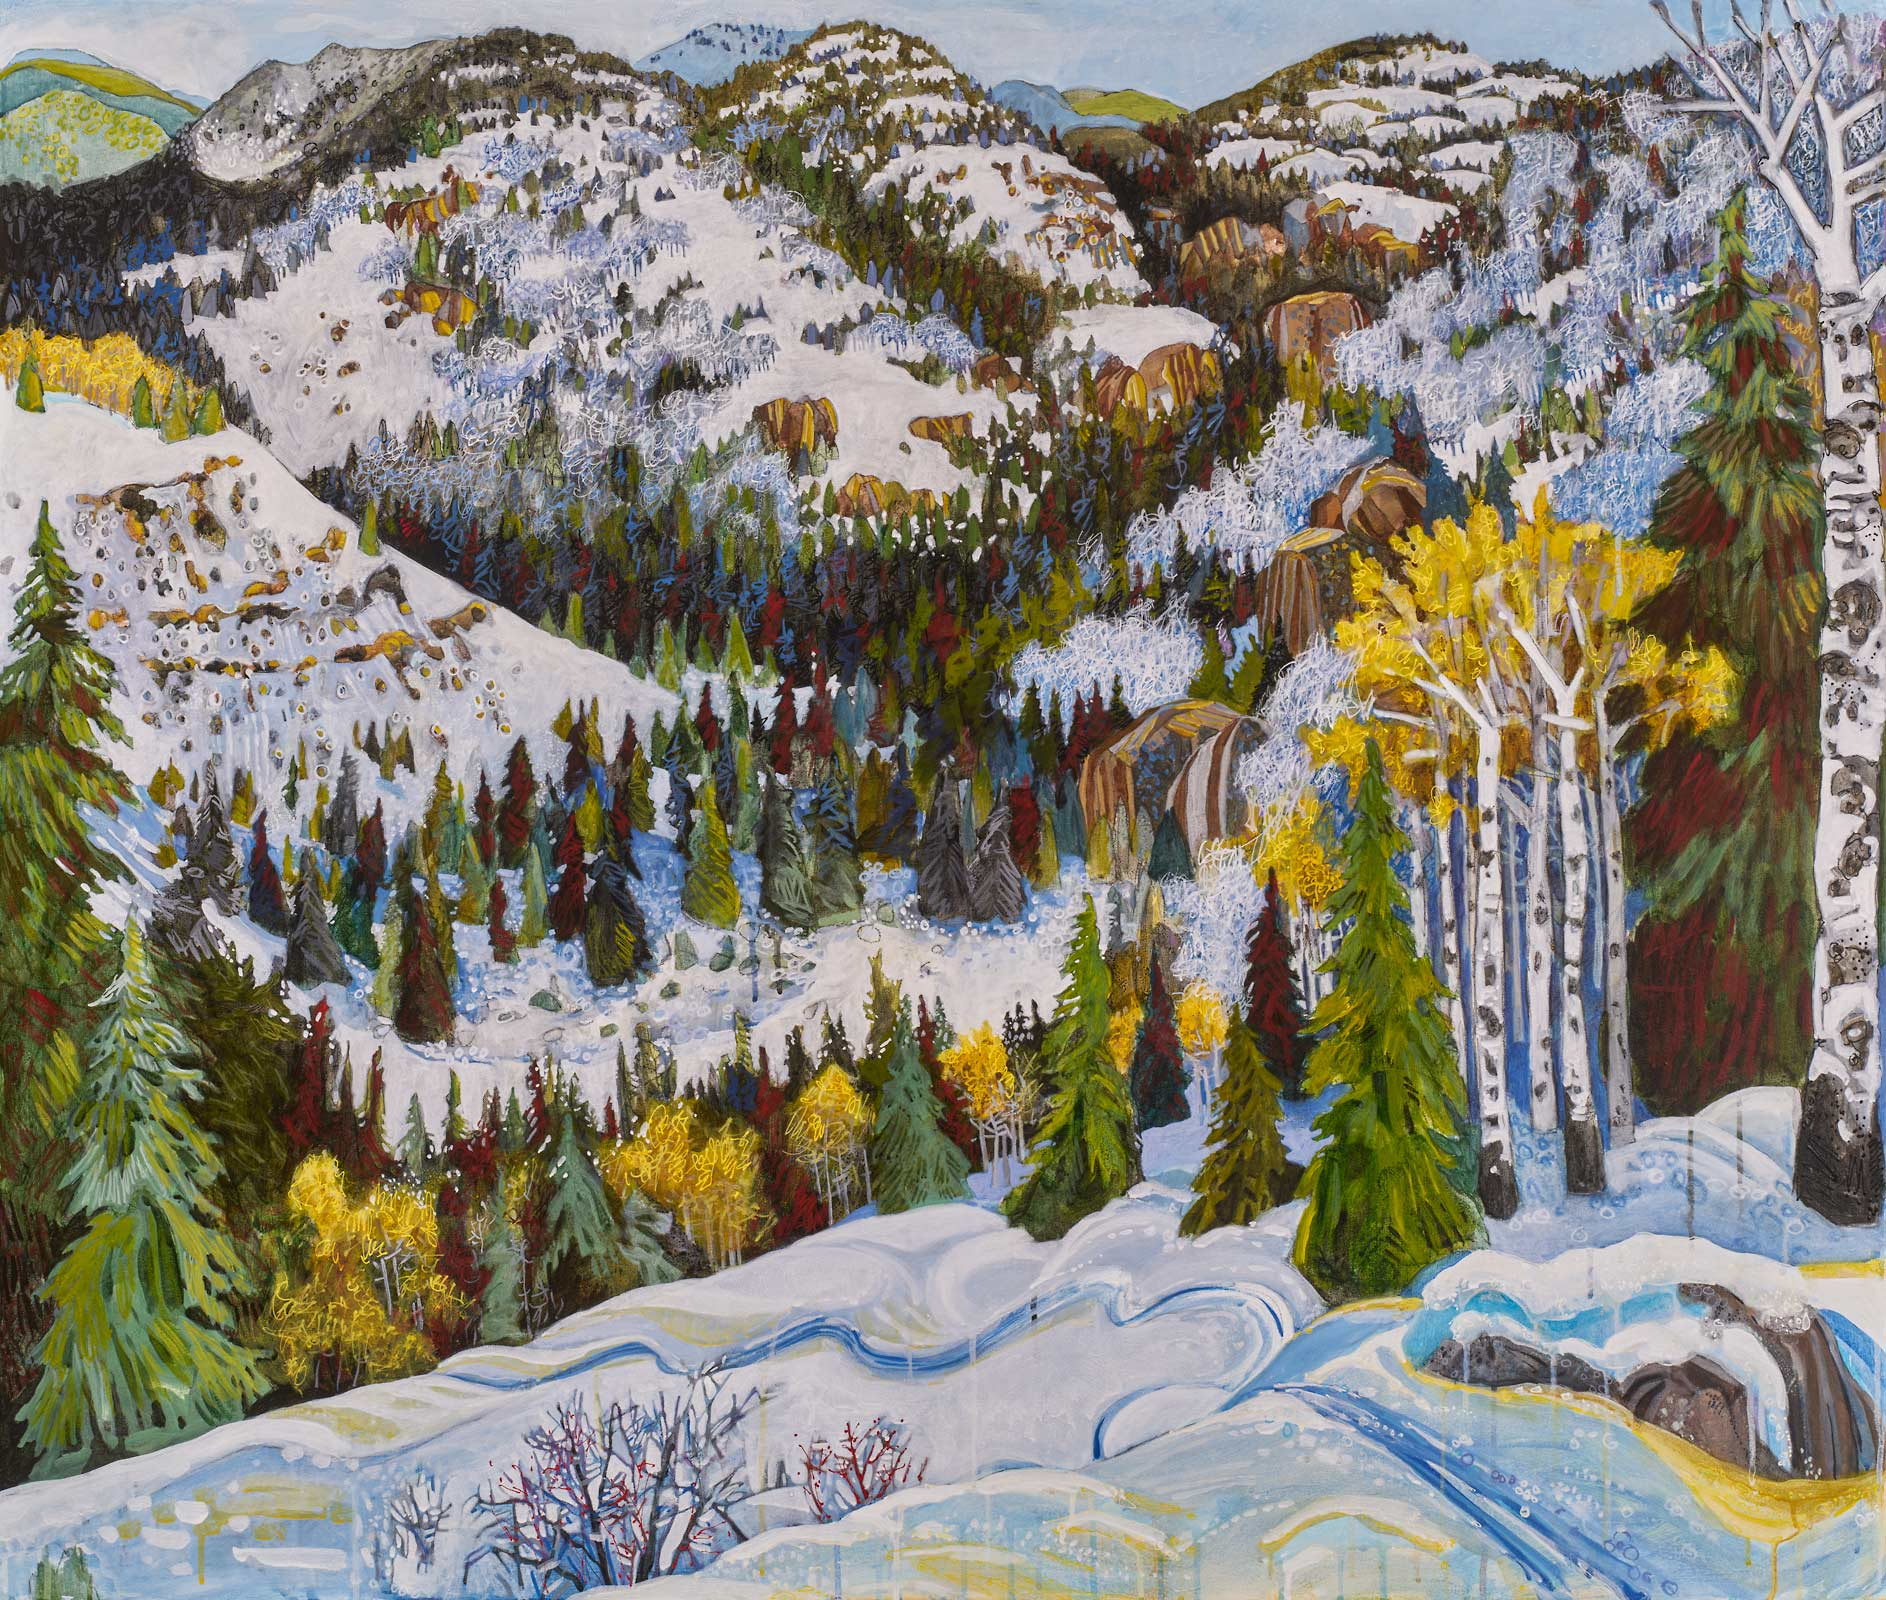 new paintings by Lance Whitner at Pine Moon Fine Art, Big View of Soda Creek 44x52